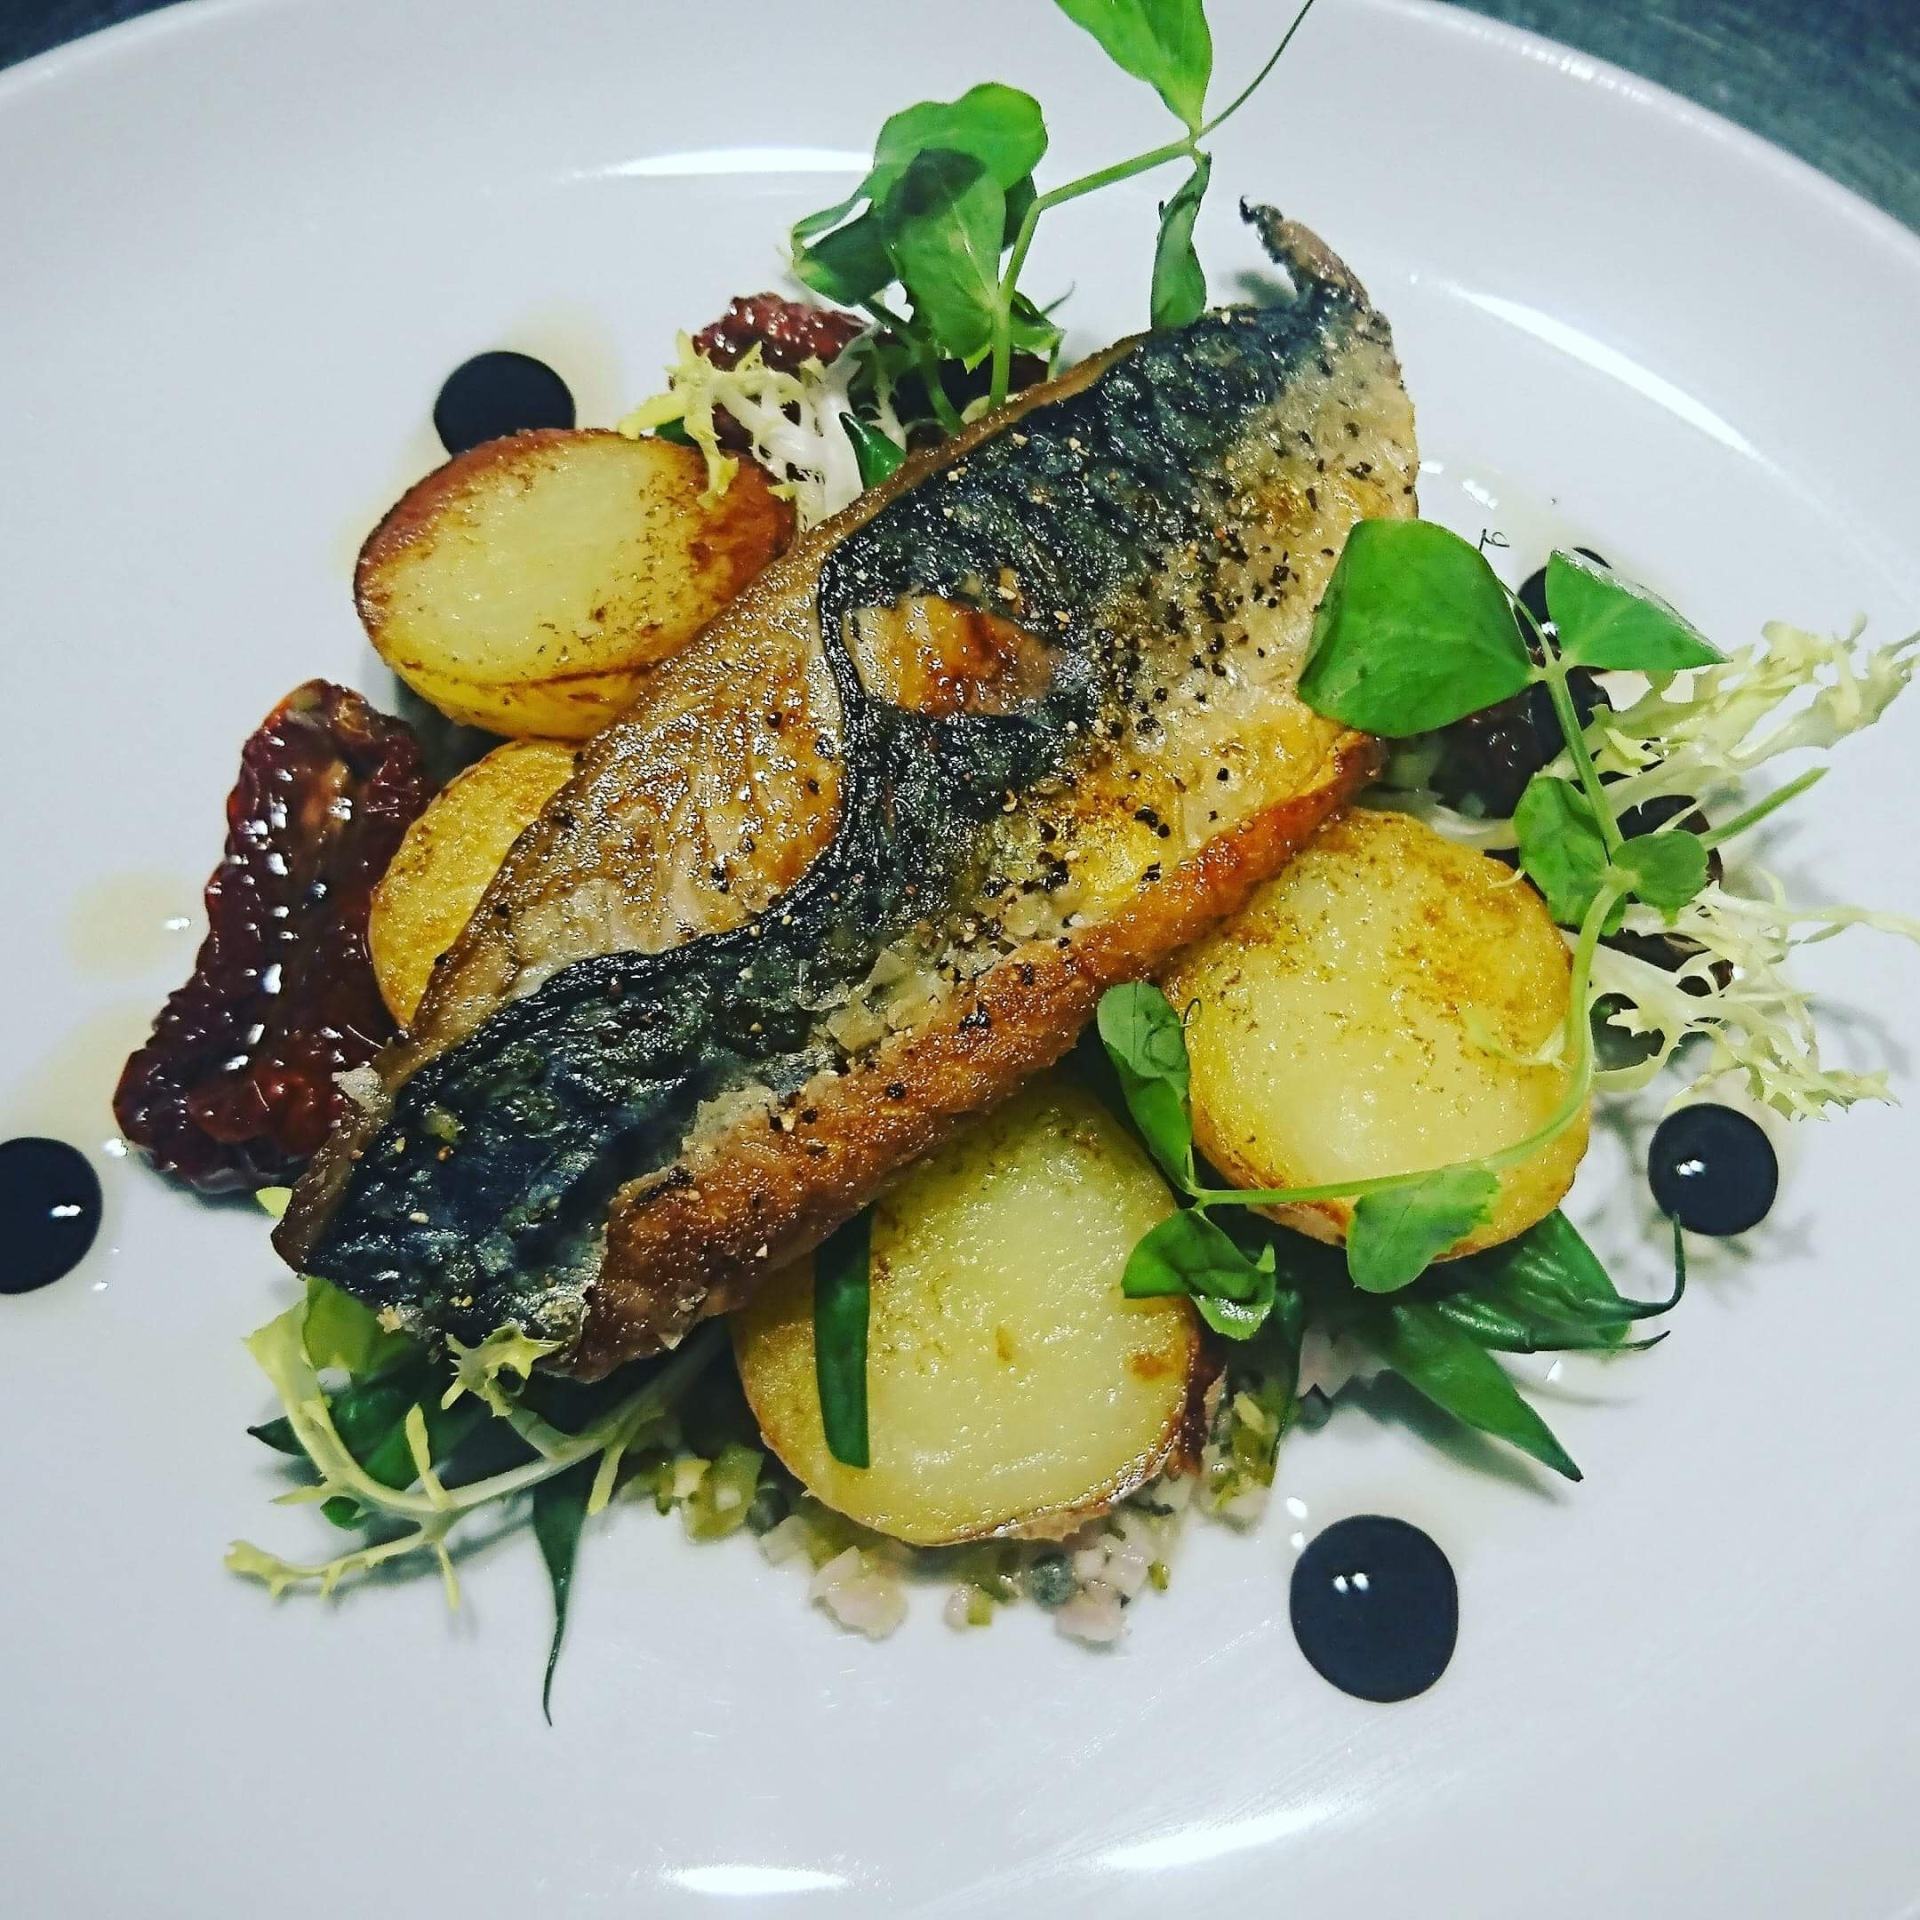 Pan fried mackerel fillet on new potatoes